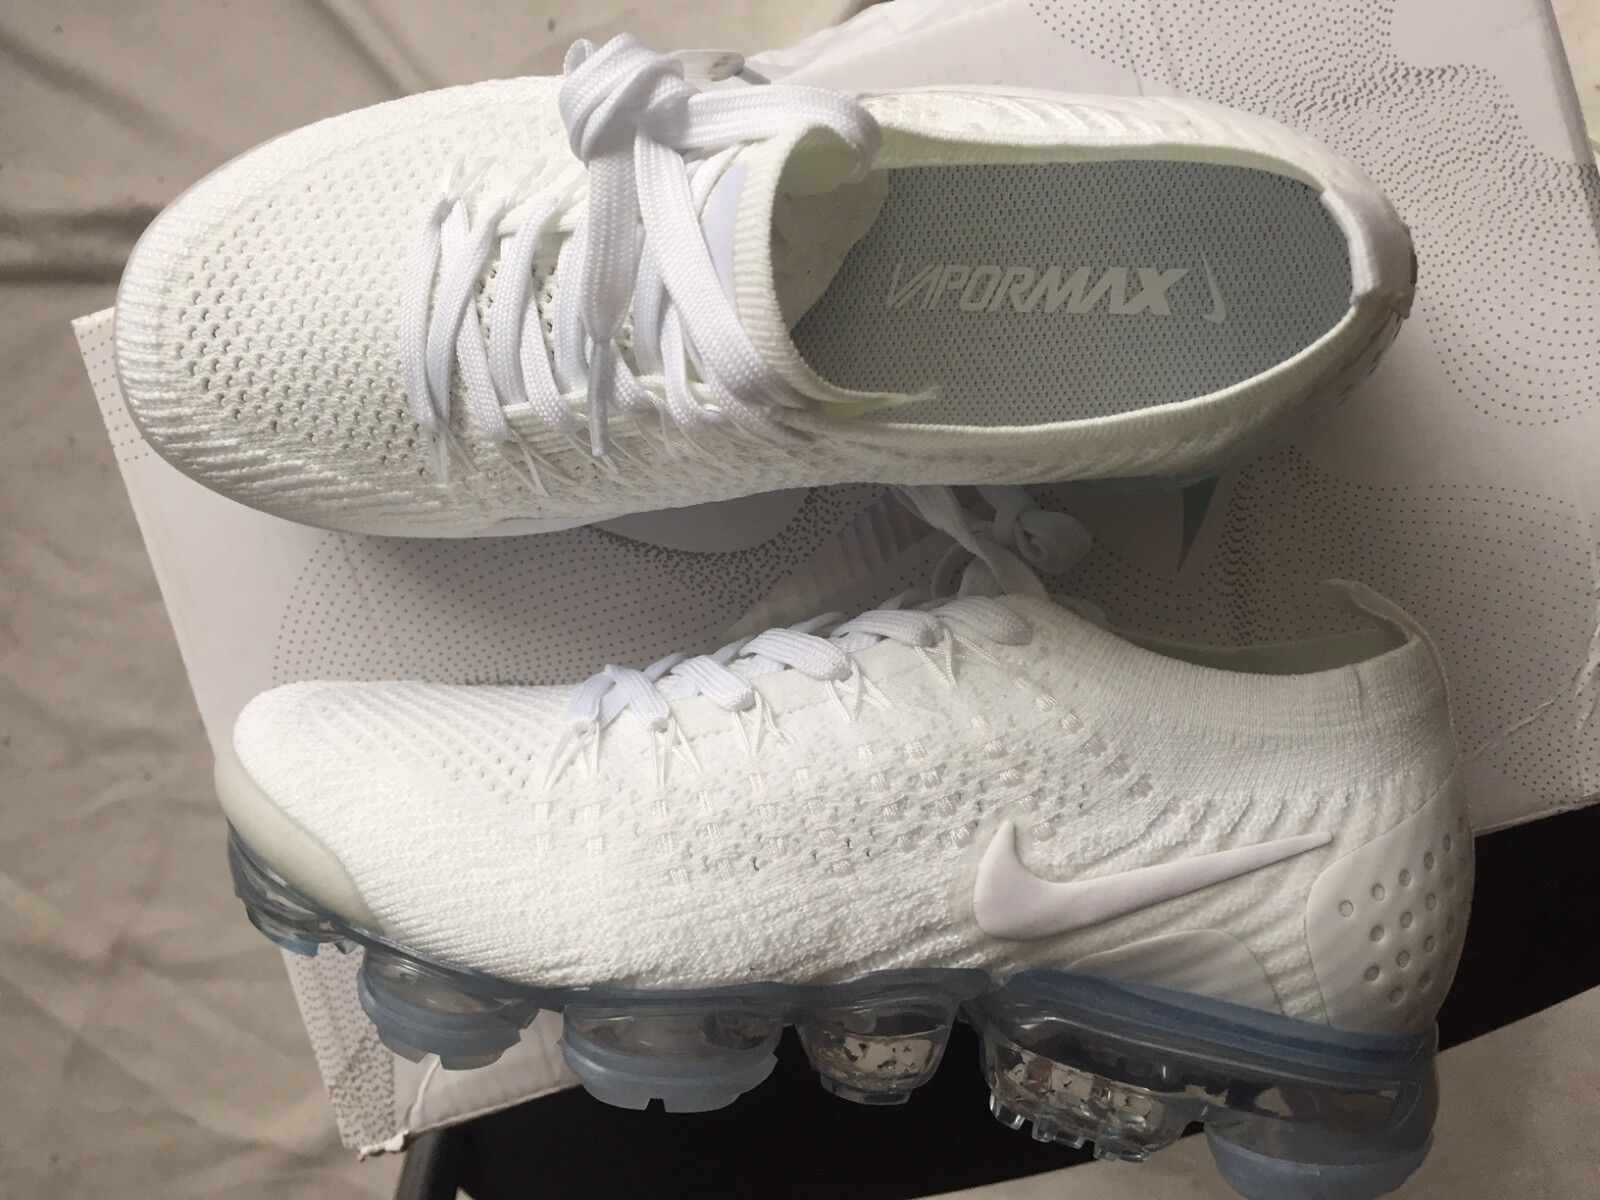 NIB-Women-Nike-Air-VaporMax-FlyKnit 2-942843-100 White Womens US 7.5 EUR 38.5